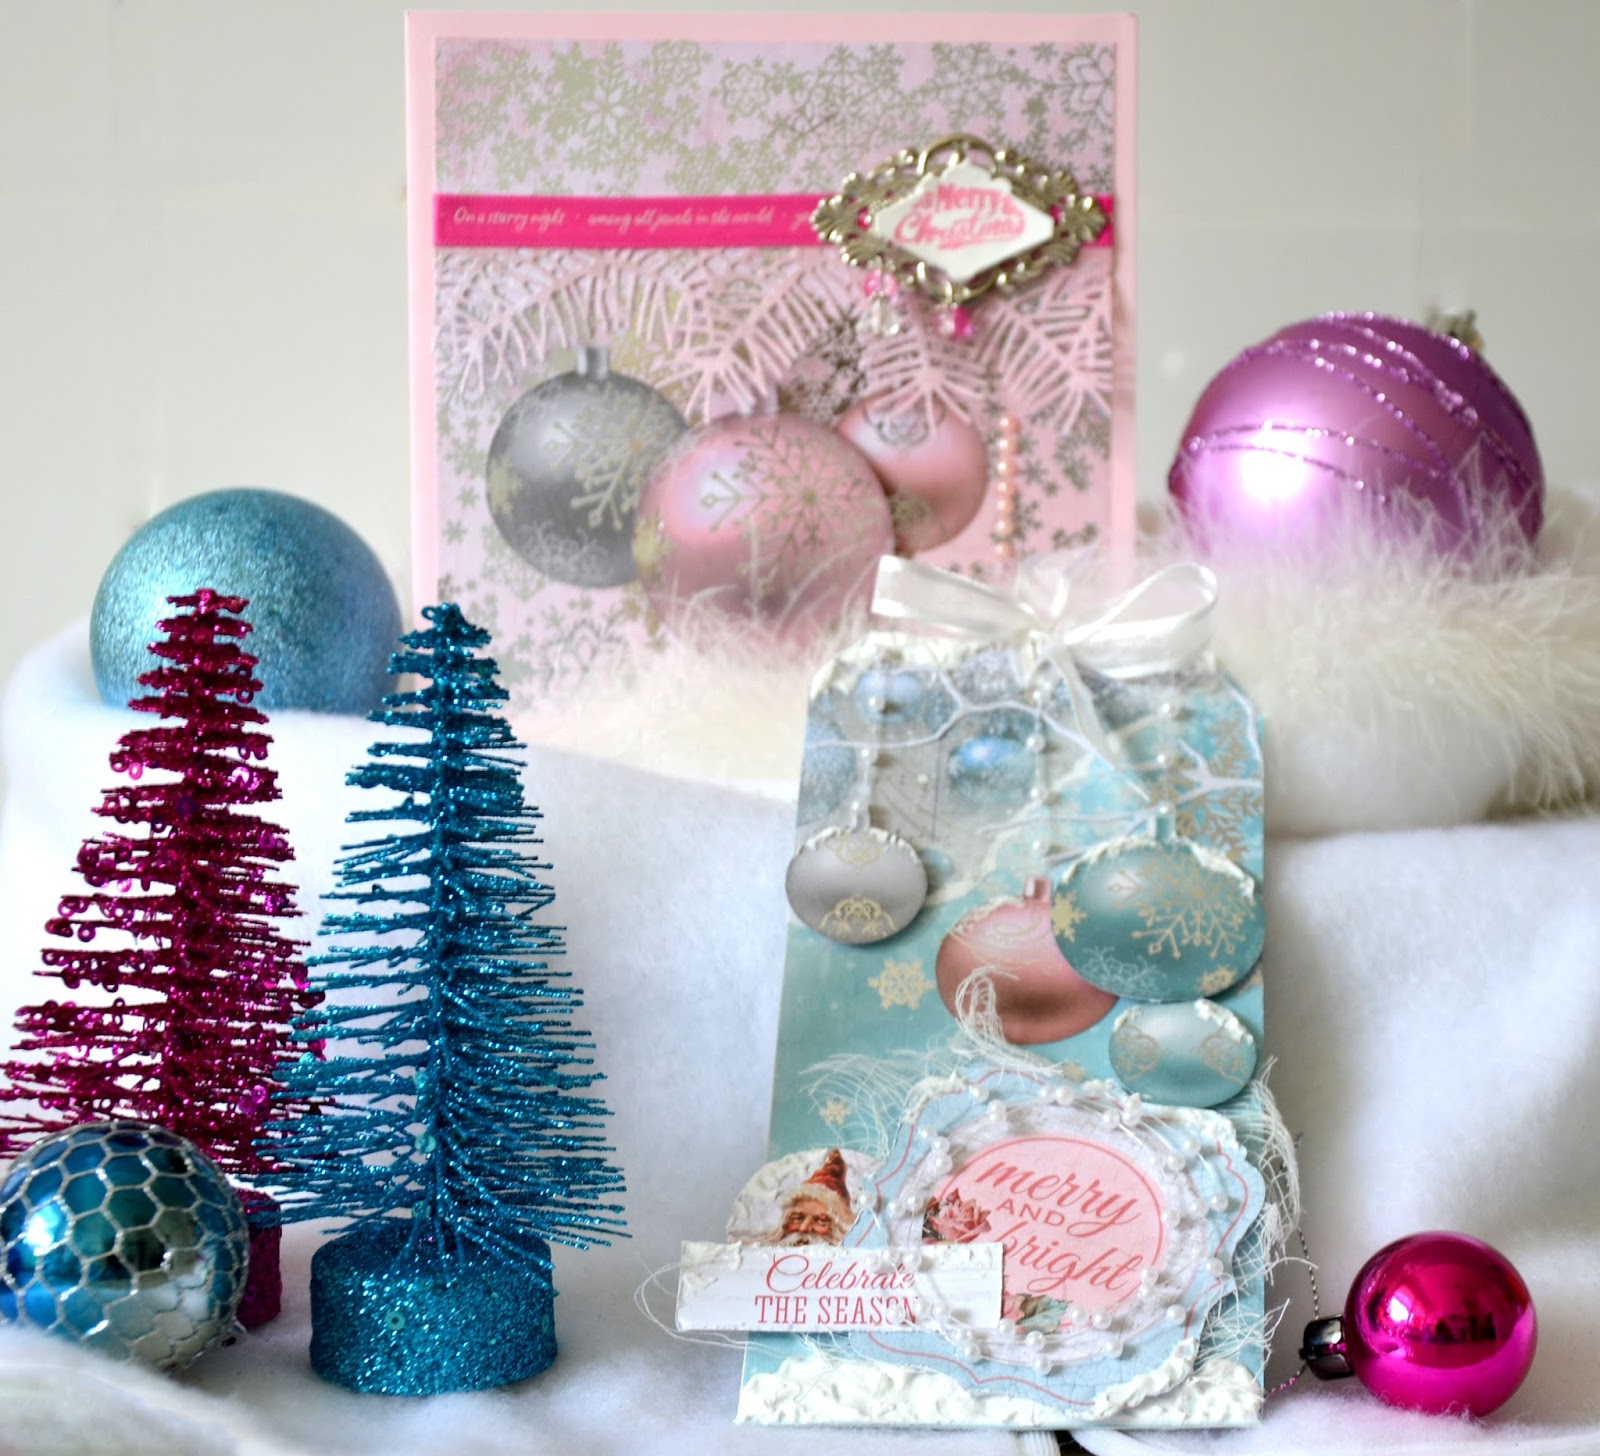 Delightful Paper Pads For Card Making Part - 5: Handmade Christmas Cards